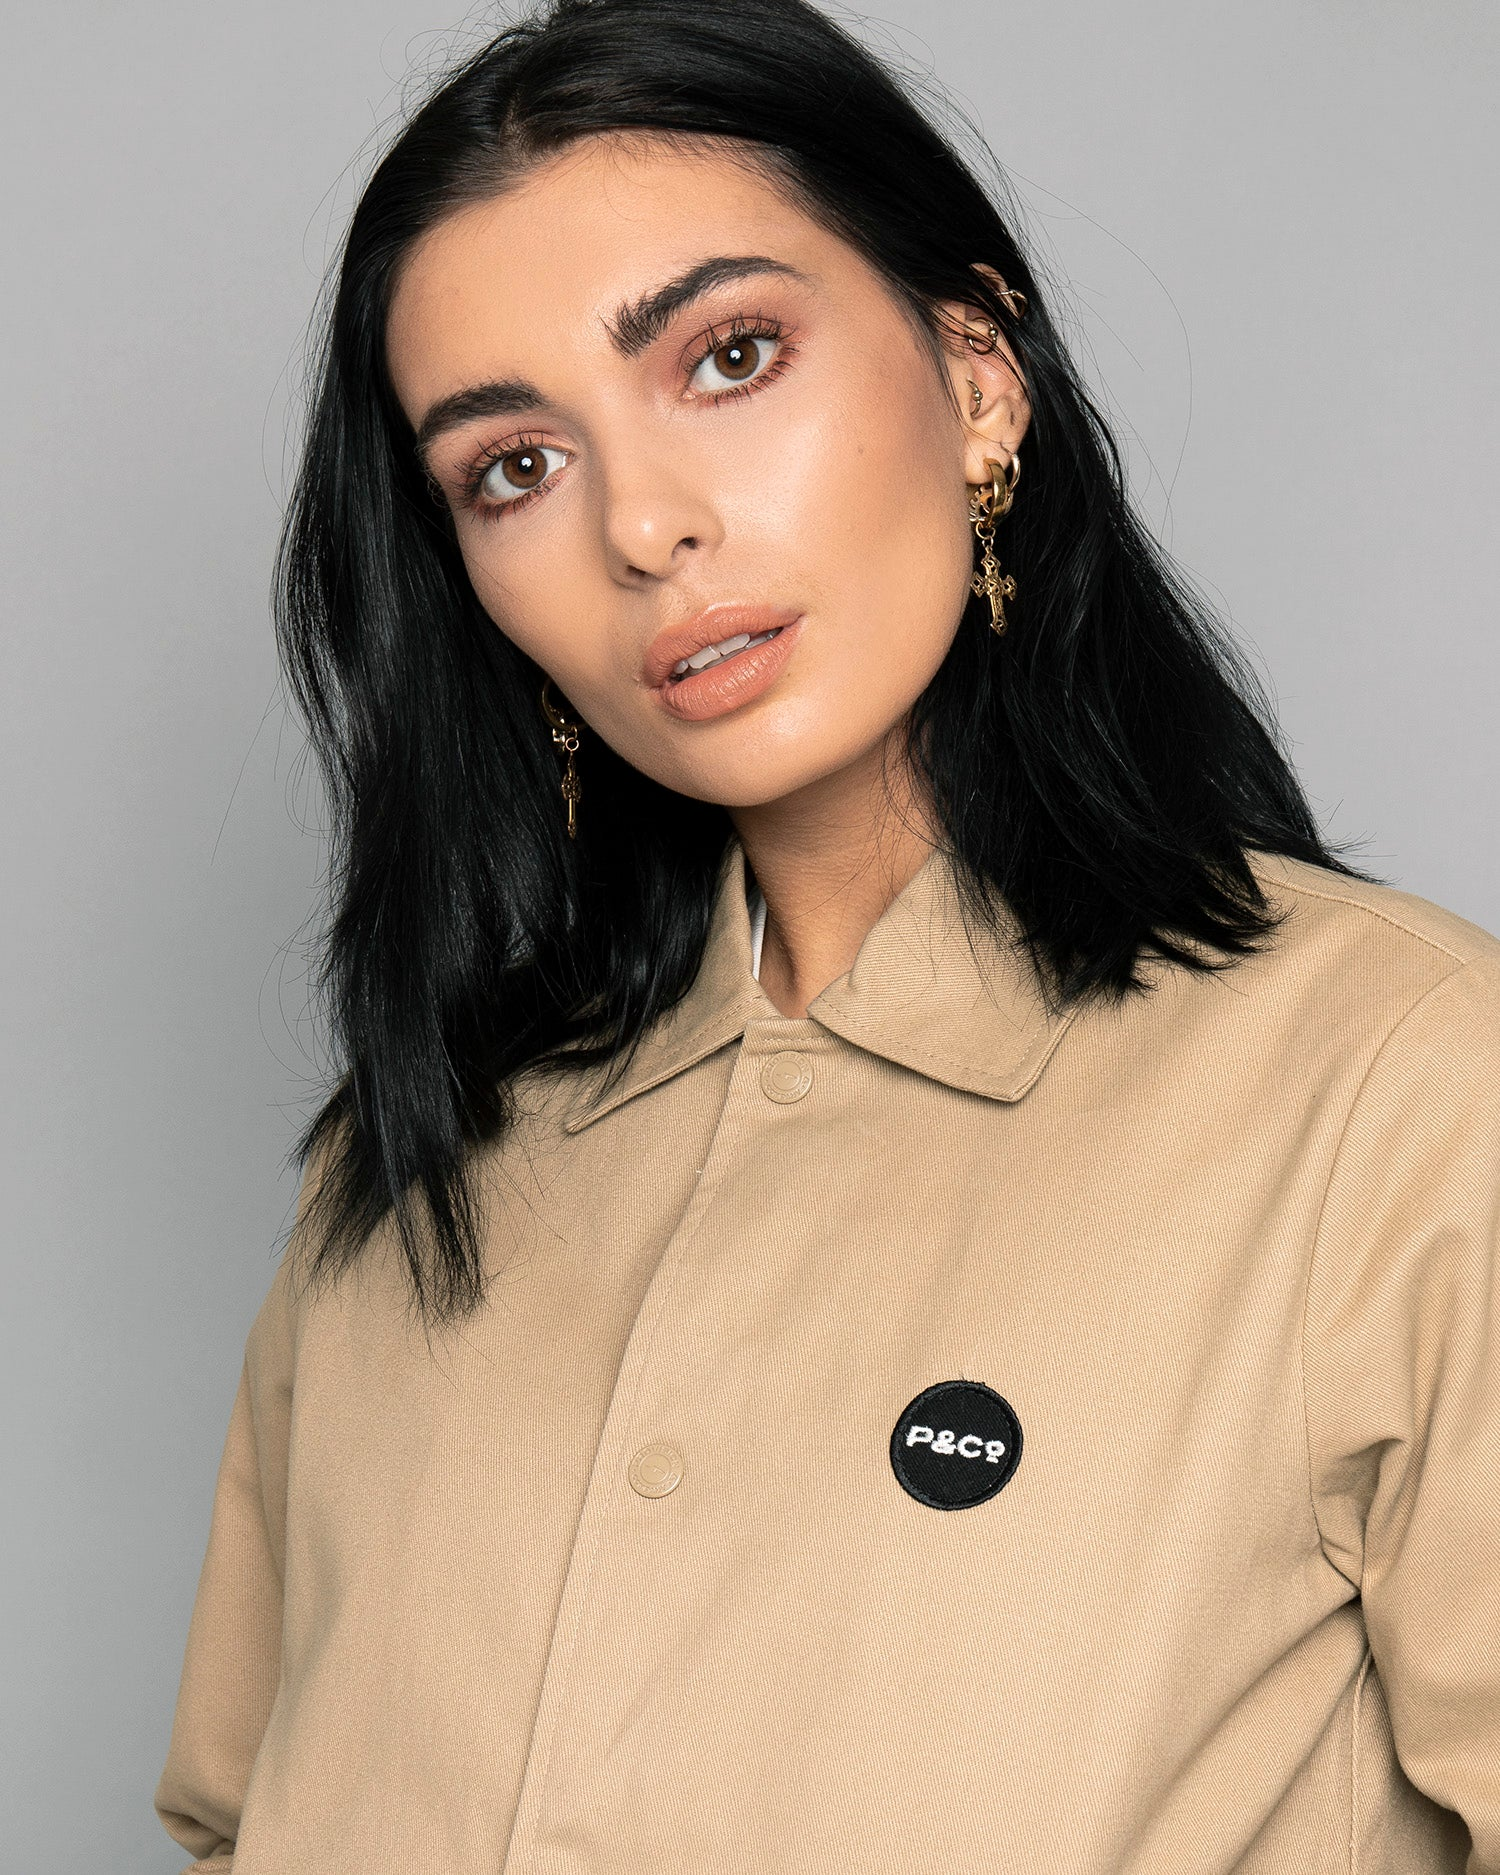 P&Co Logo Stone Womens Coach jacket